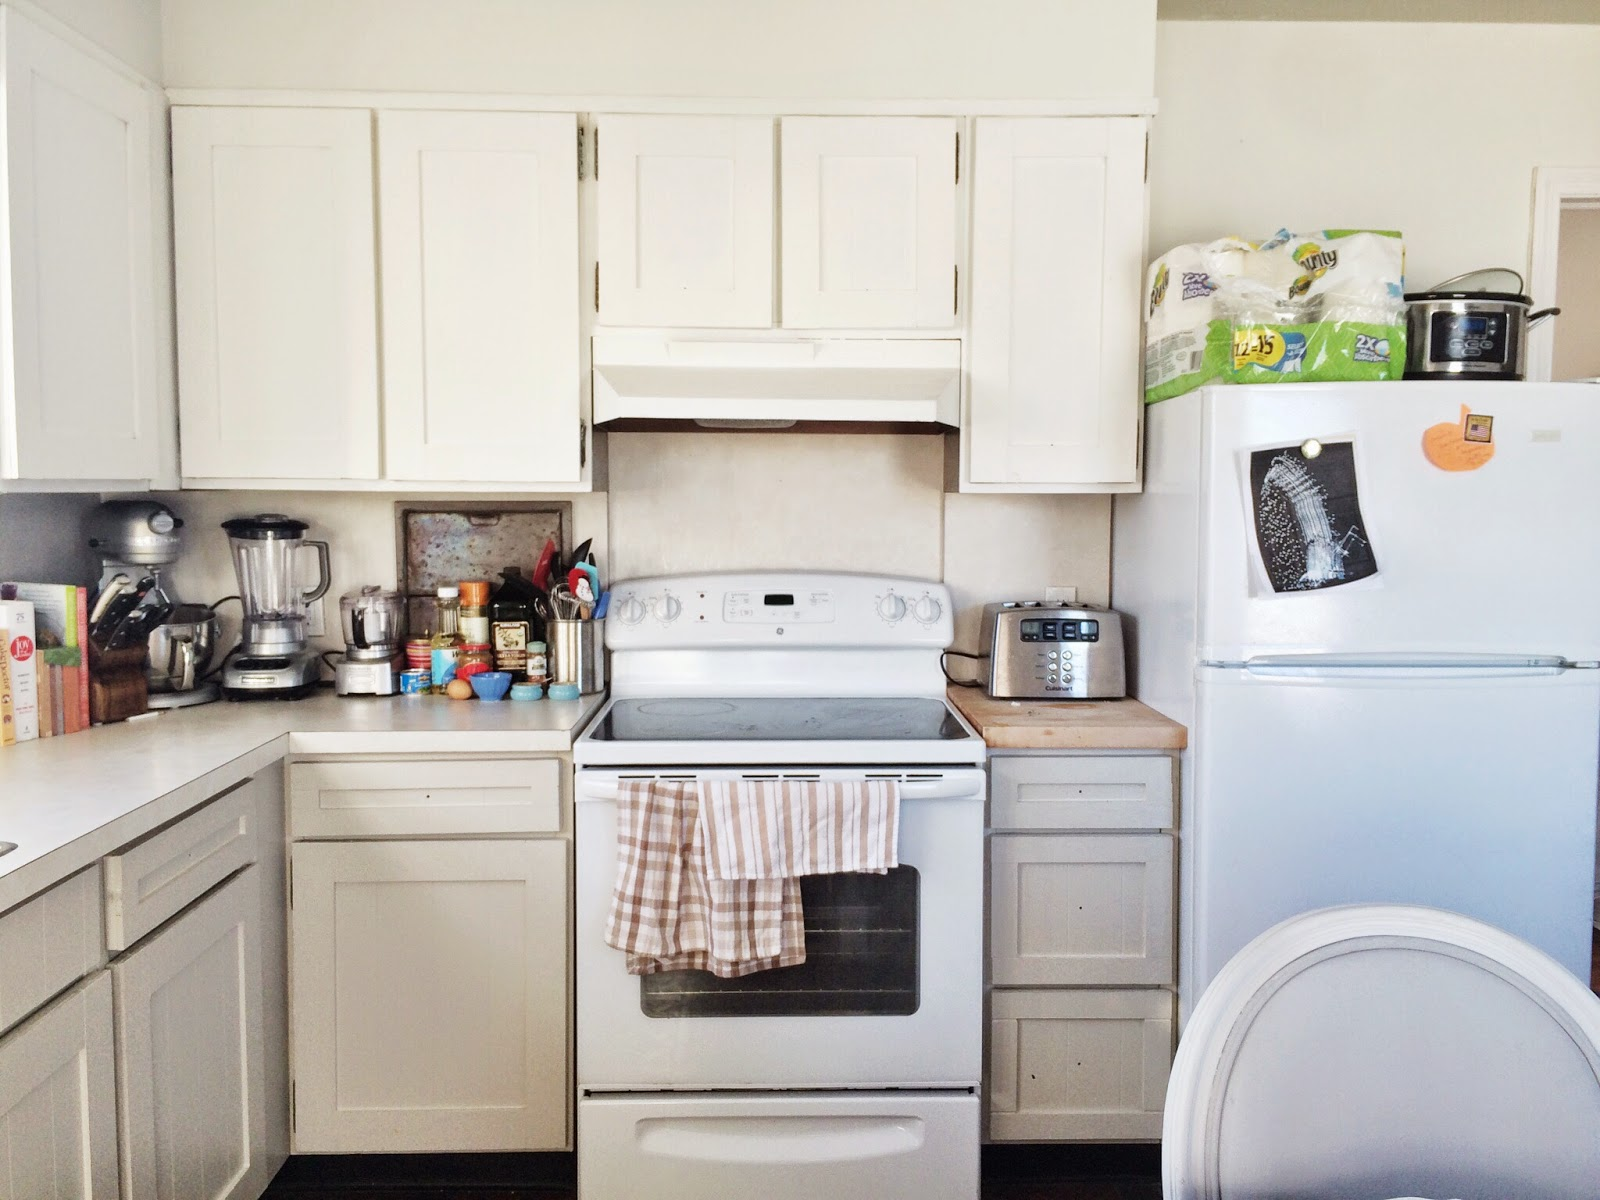 How to: Paint & Add Shaker Trim to Kitchen Cabinets | By ...